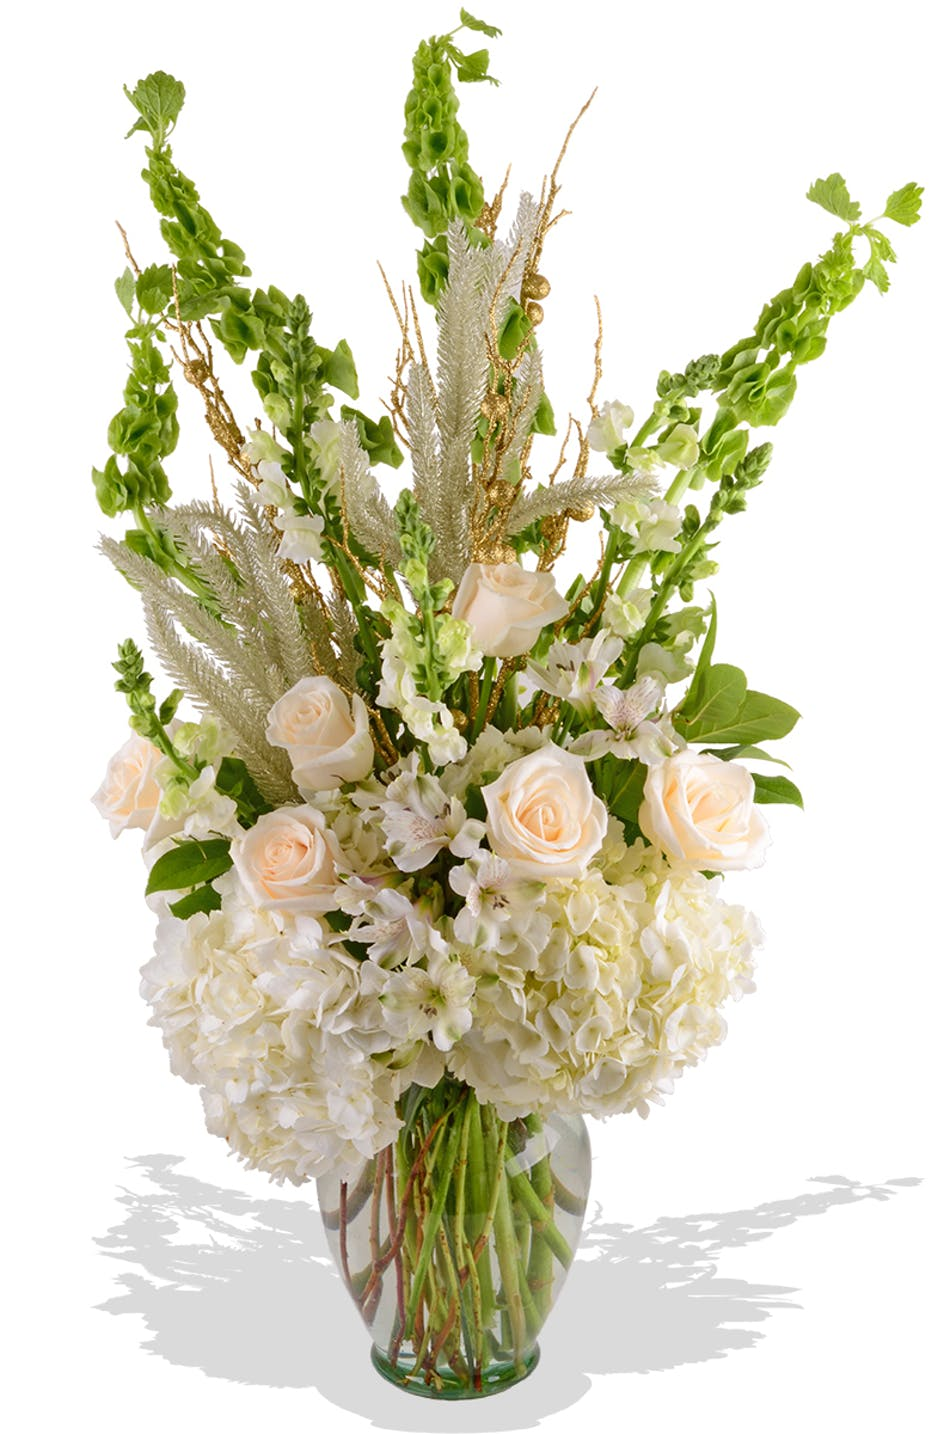 Beautiful winter blooms billy heromans flowers gifts white new years flowers baton rouge la same day delivery by billy heromans izmirmasajfo